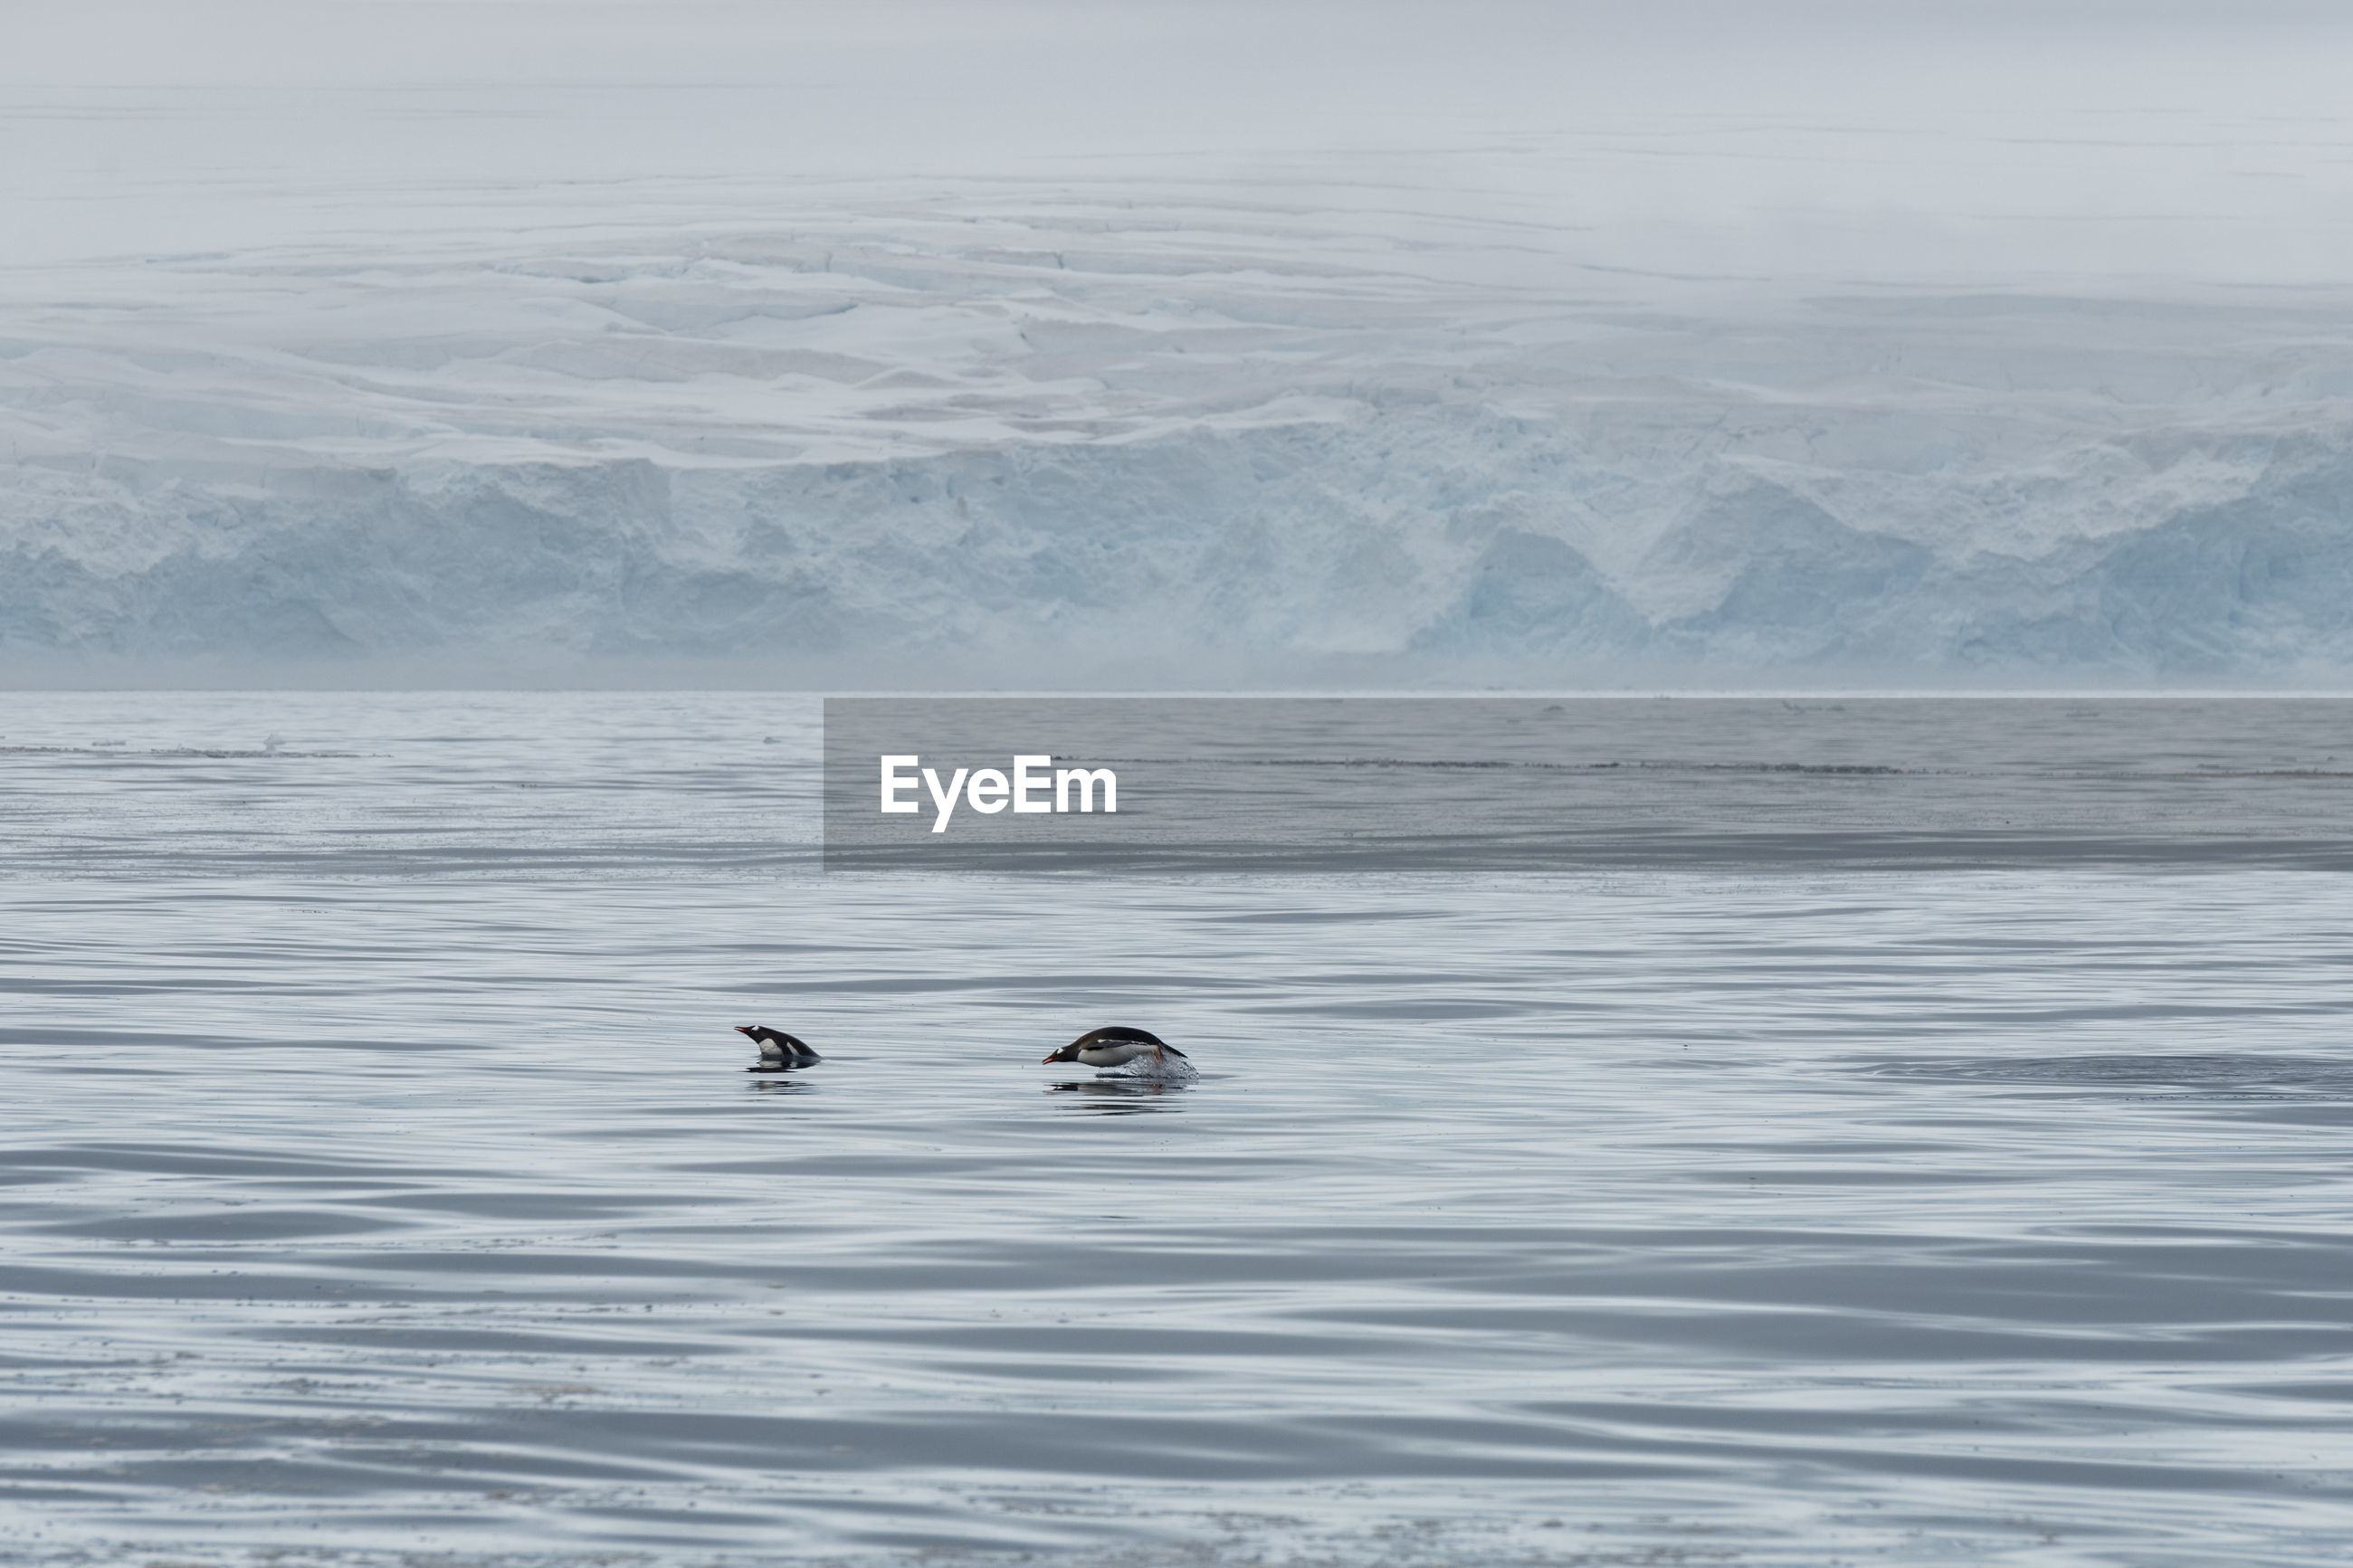 Gentoo penguins porpoising in front of a glacier outside low island in the antarctic.